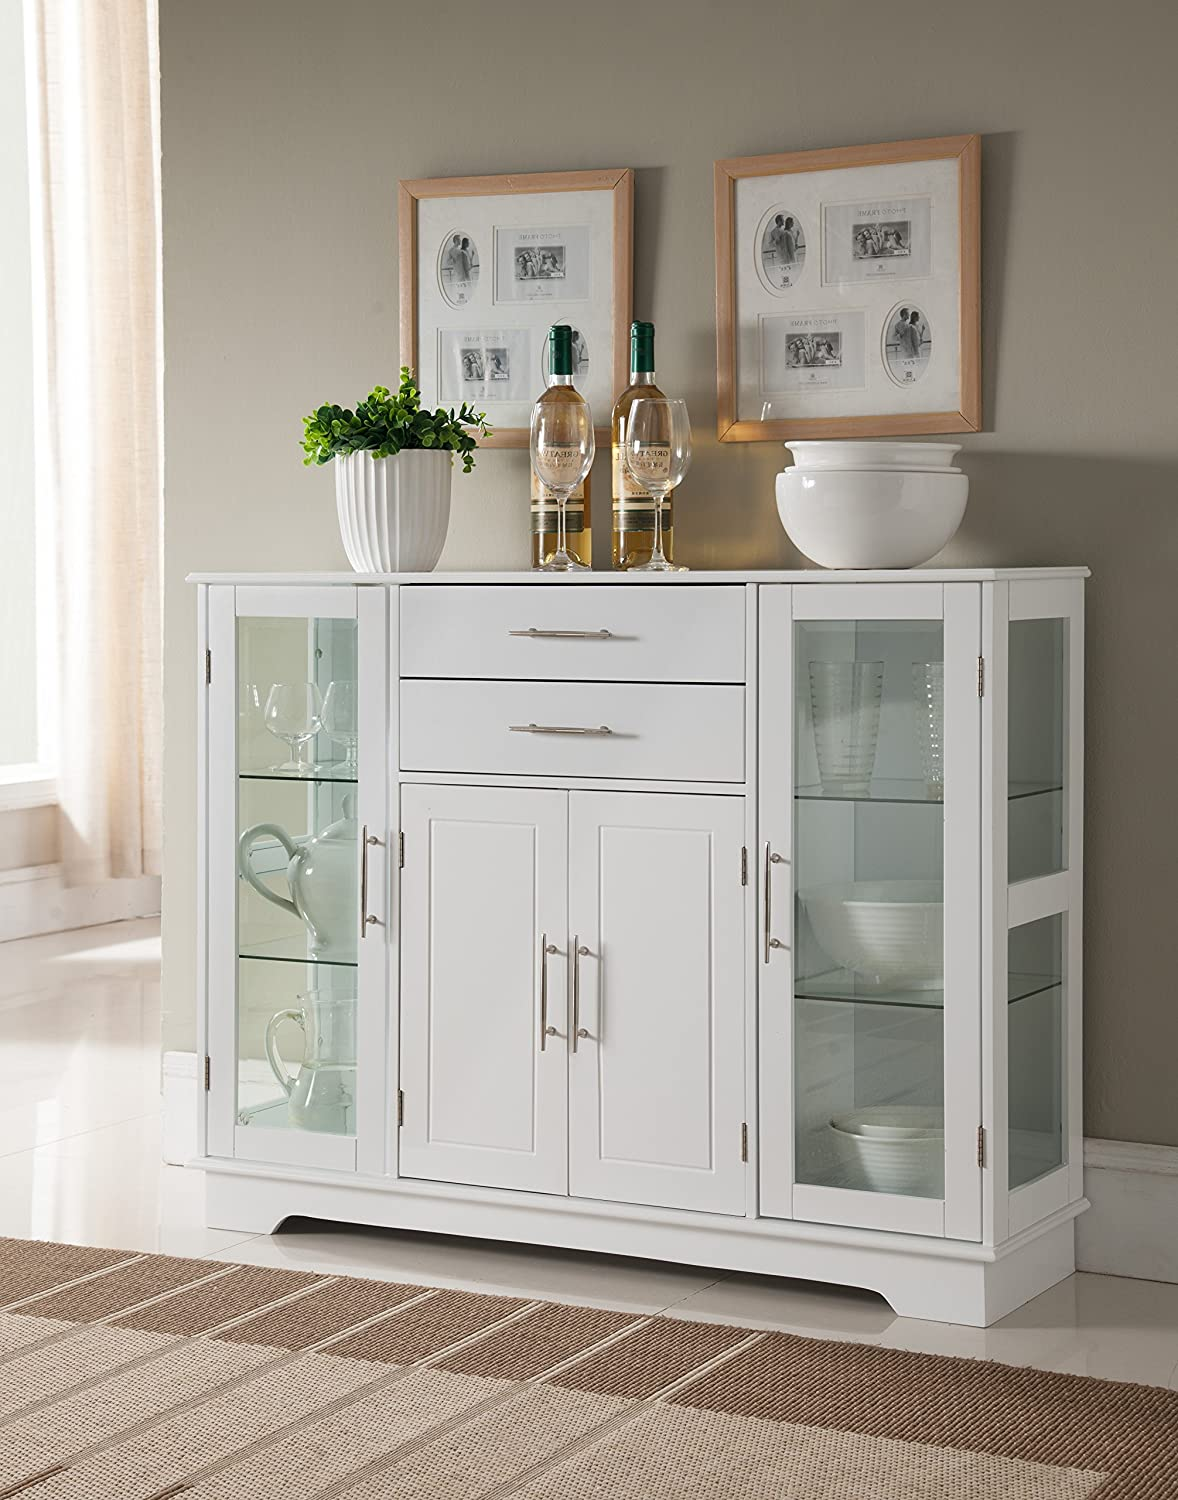 White Wood Kitchen Buffet Display Cabinet With Storage Drawers Glass Doors Amazon In Home Kitchen